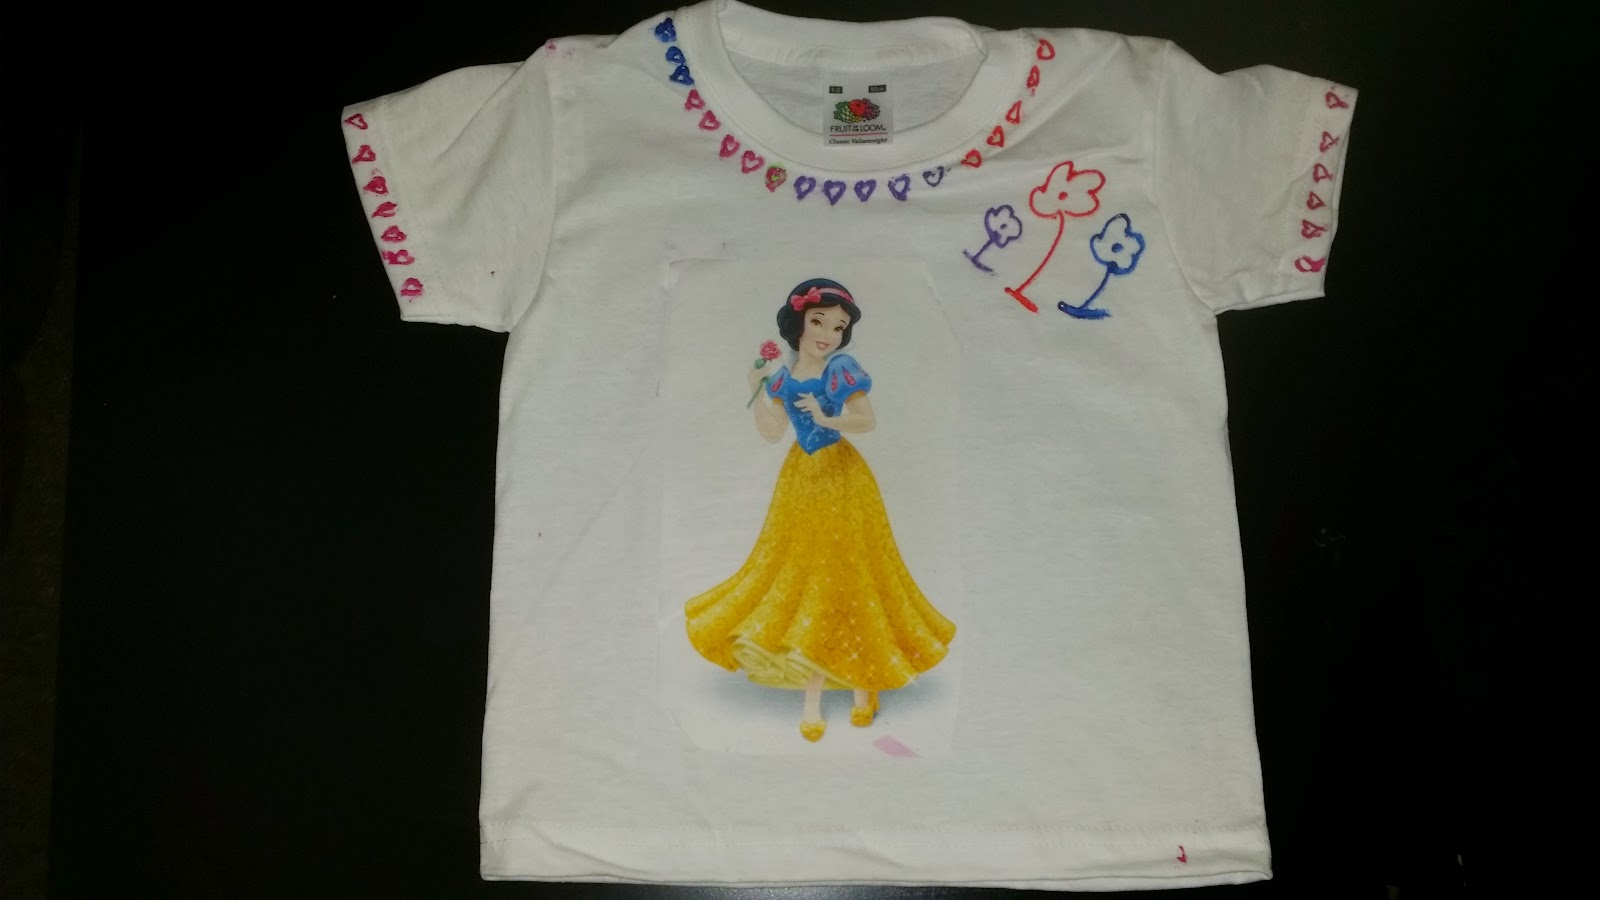 Ready to wear Designed T-shirt :)